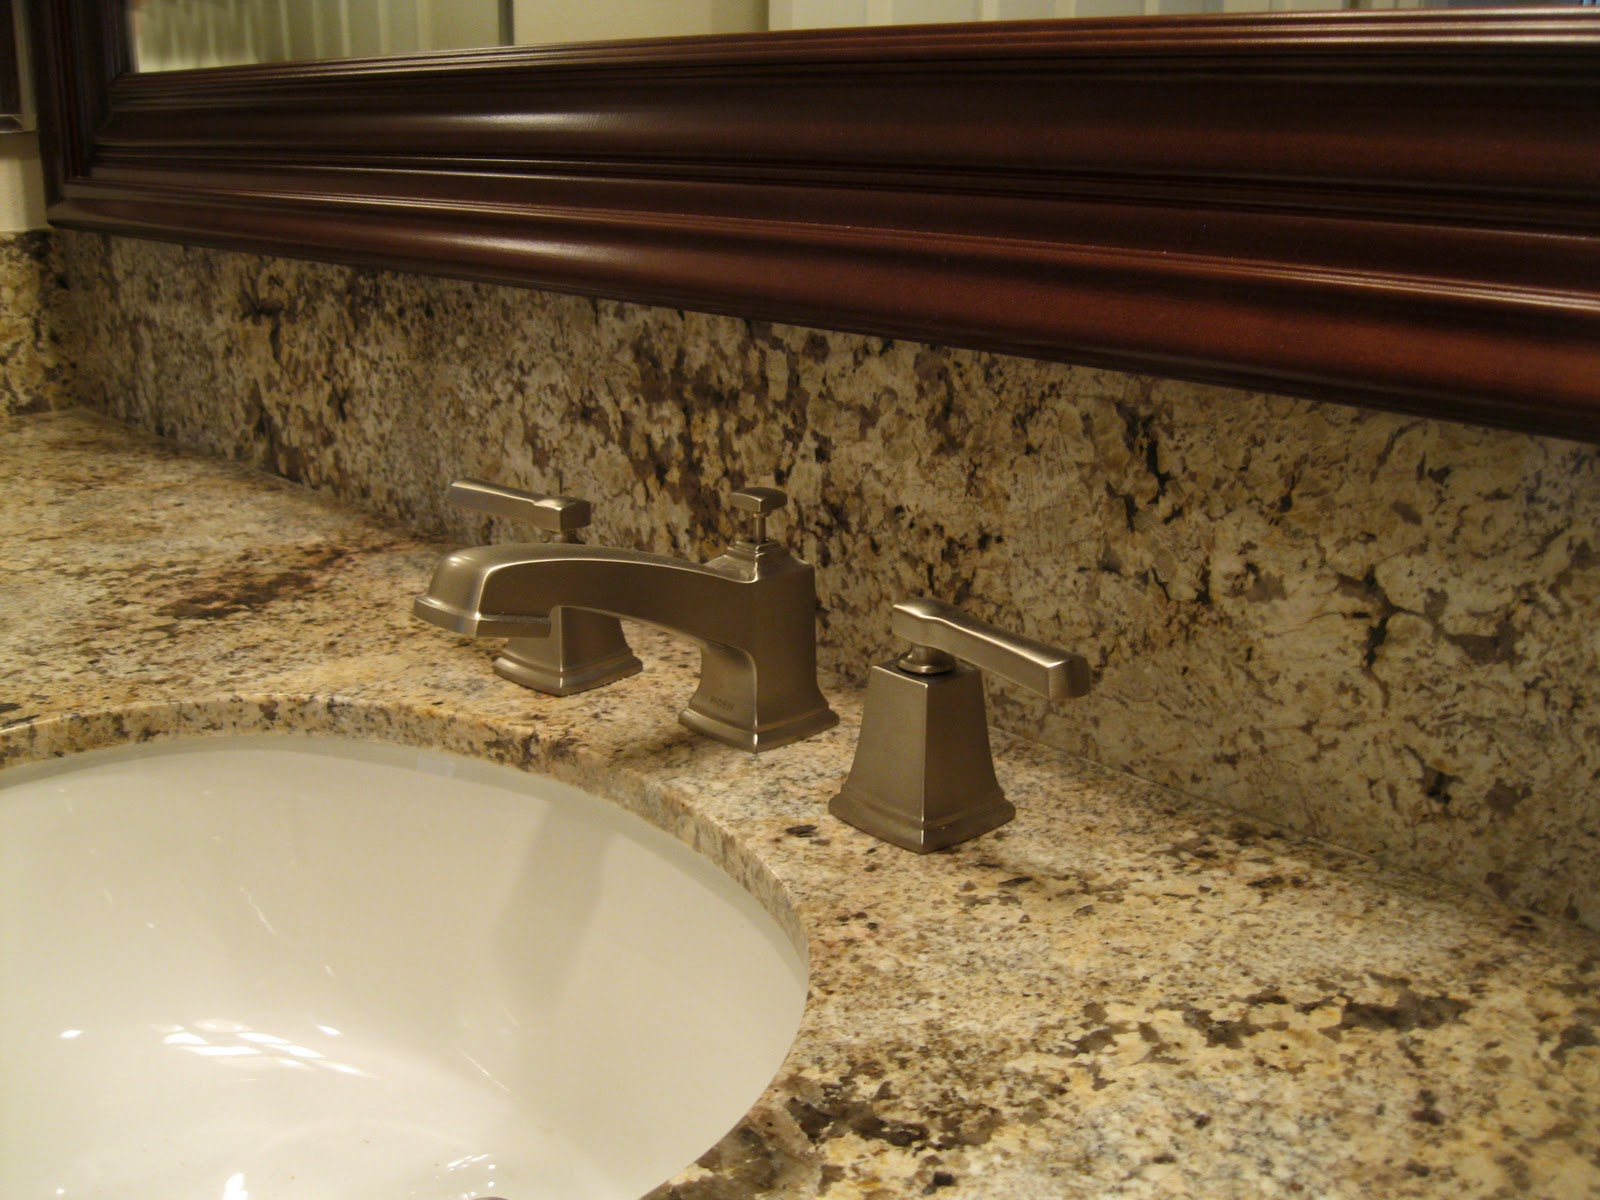 love the squared off look of this faucet